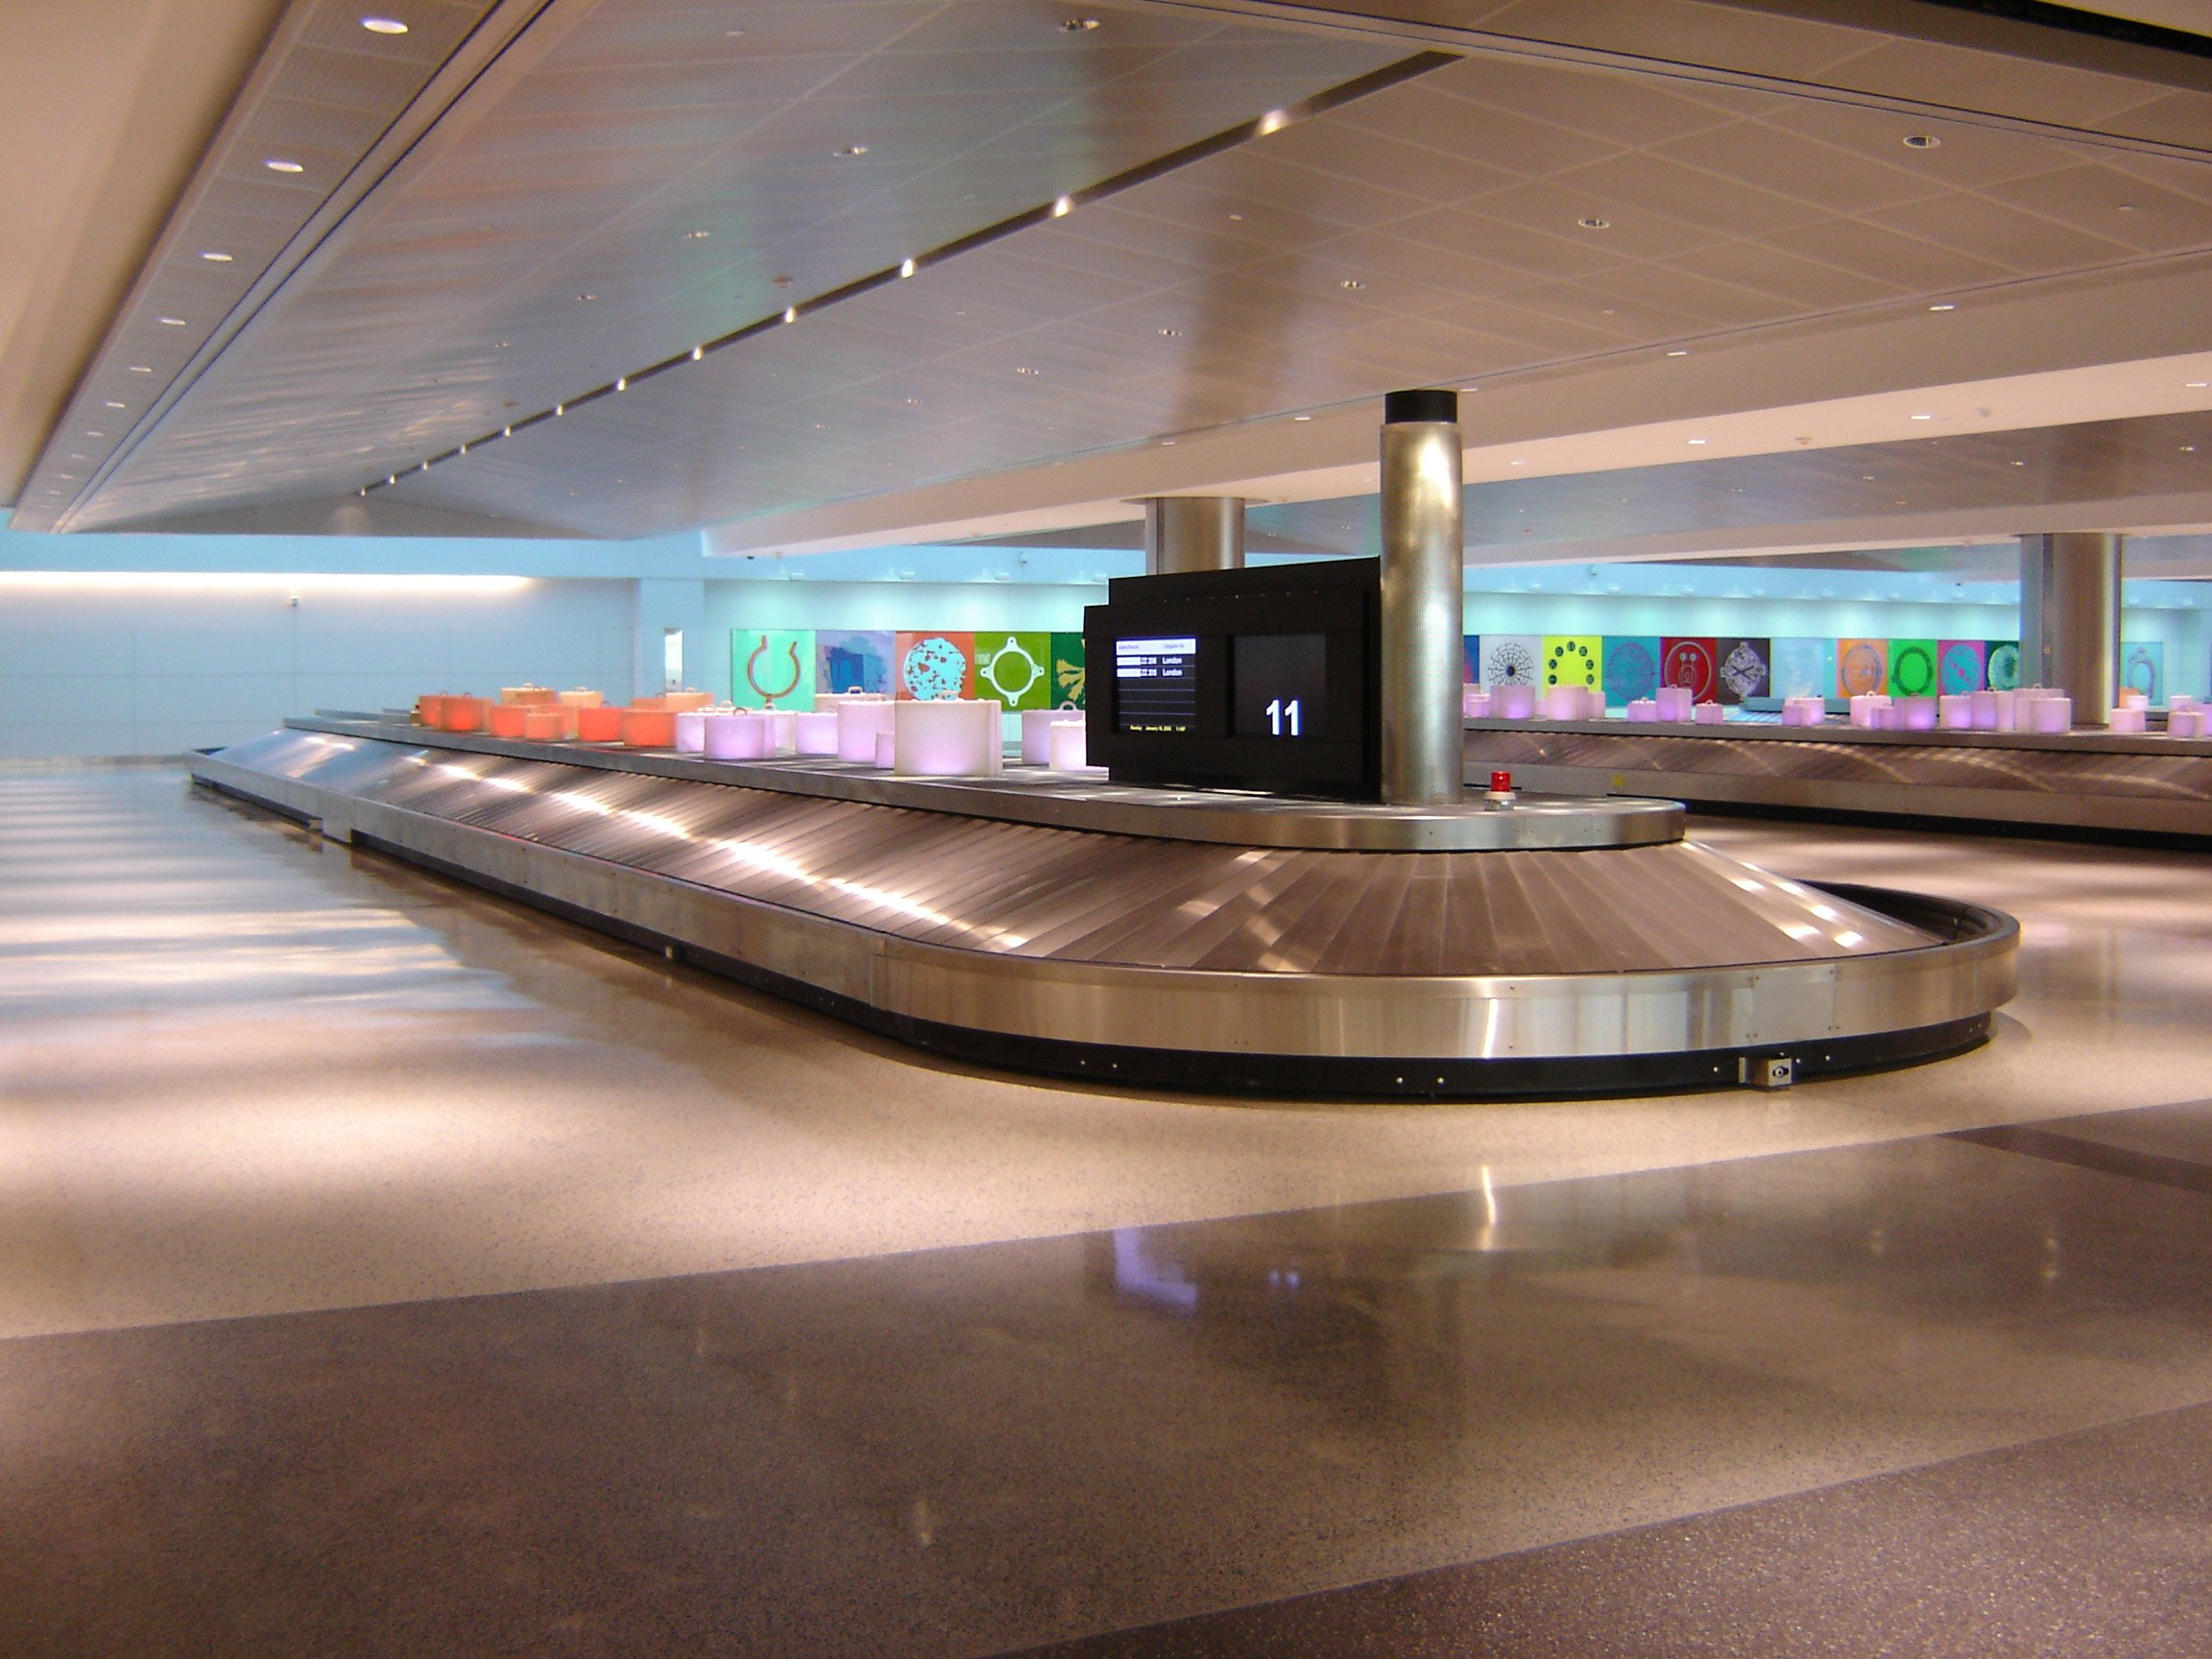 airport conveyor